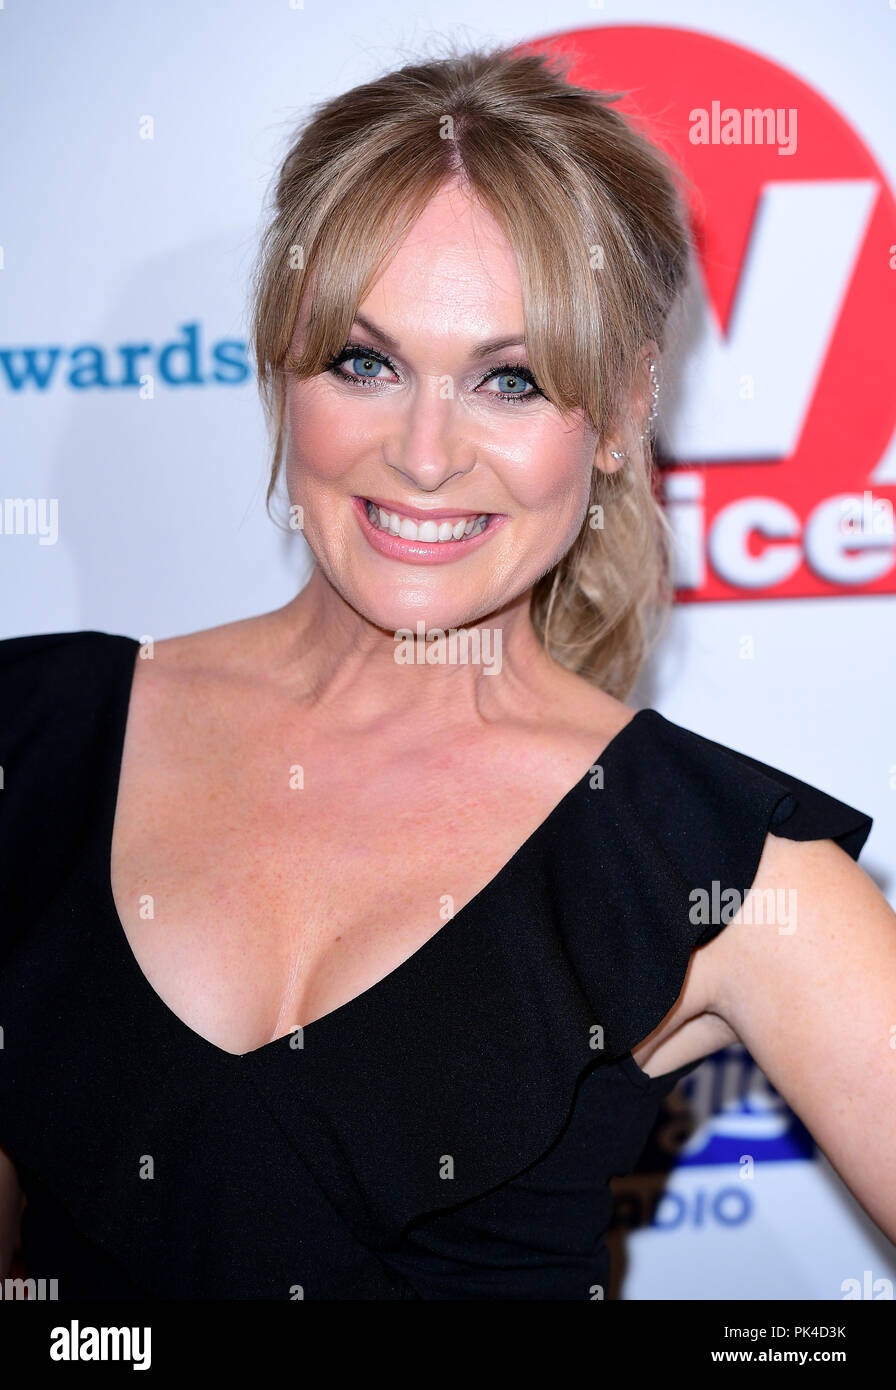 Images Michelle Hardwick nude (38 foto and video), Sexy, Bikini, Selfie, legs 2017